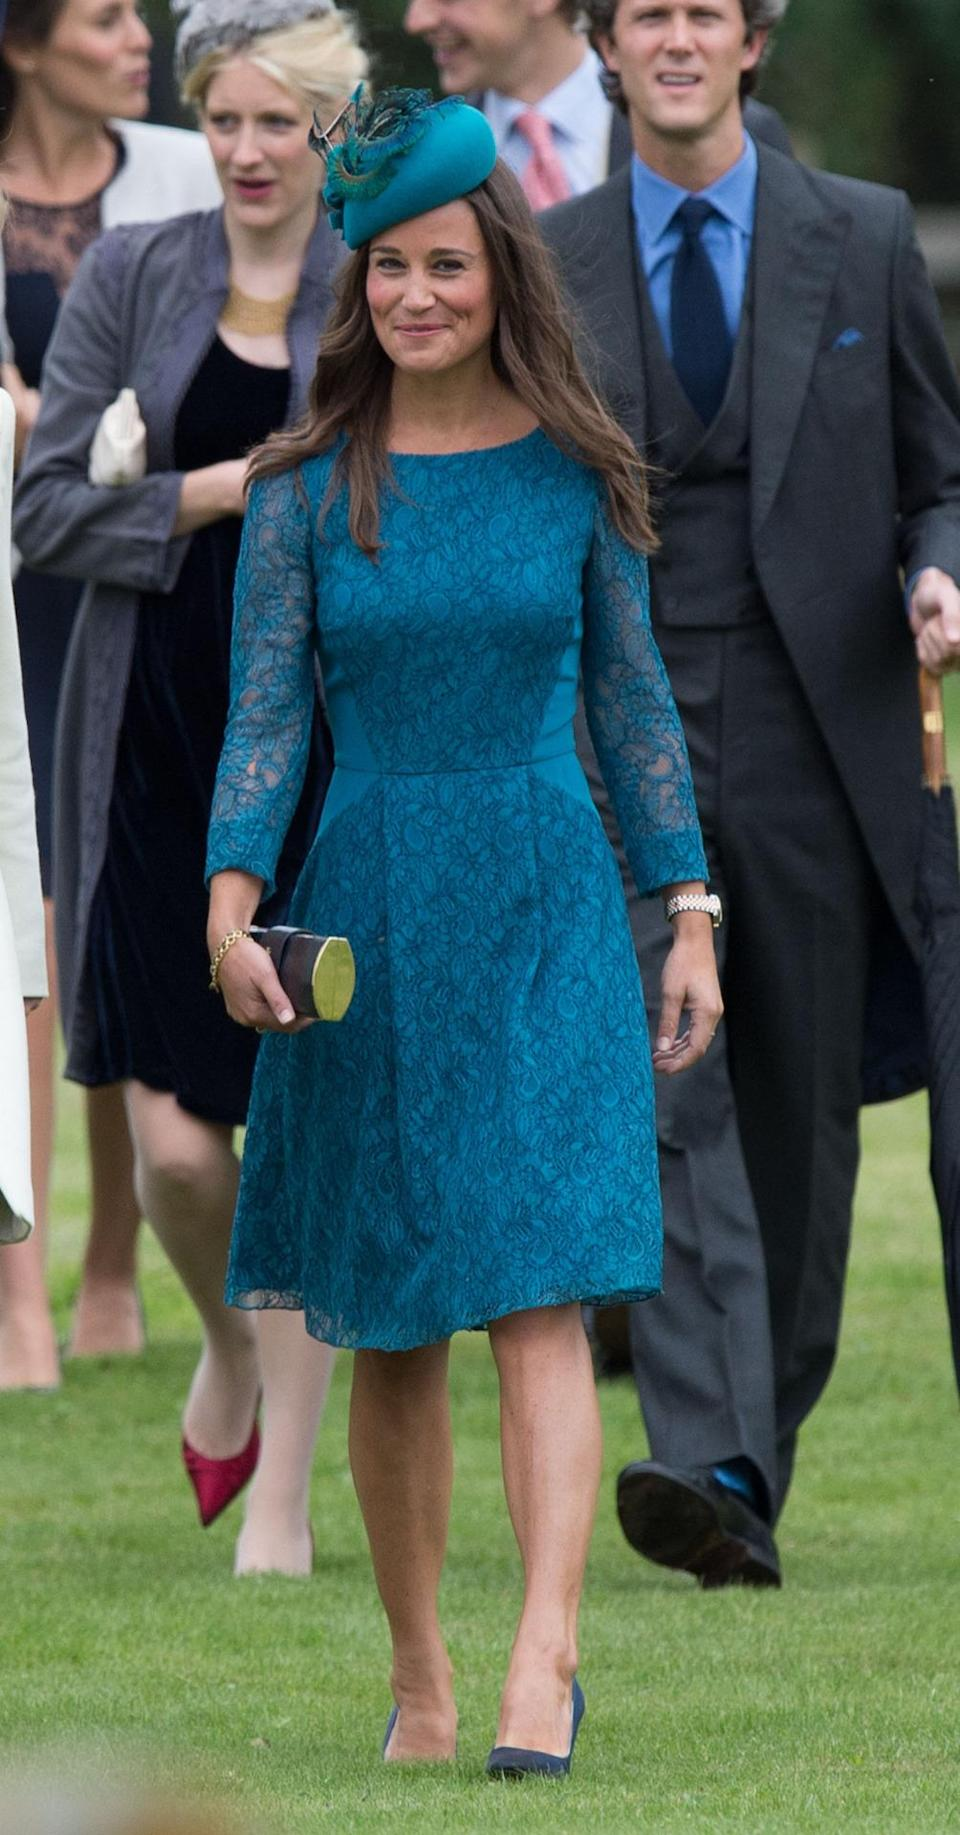 <p>Wearing a teal, lace Tabitha Webb dress to a wedding in 2013, Pippa took a leaf out of her sister's book and added a hat as the finishing touch.<i> [Photo: PA Images]</i> </p>